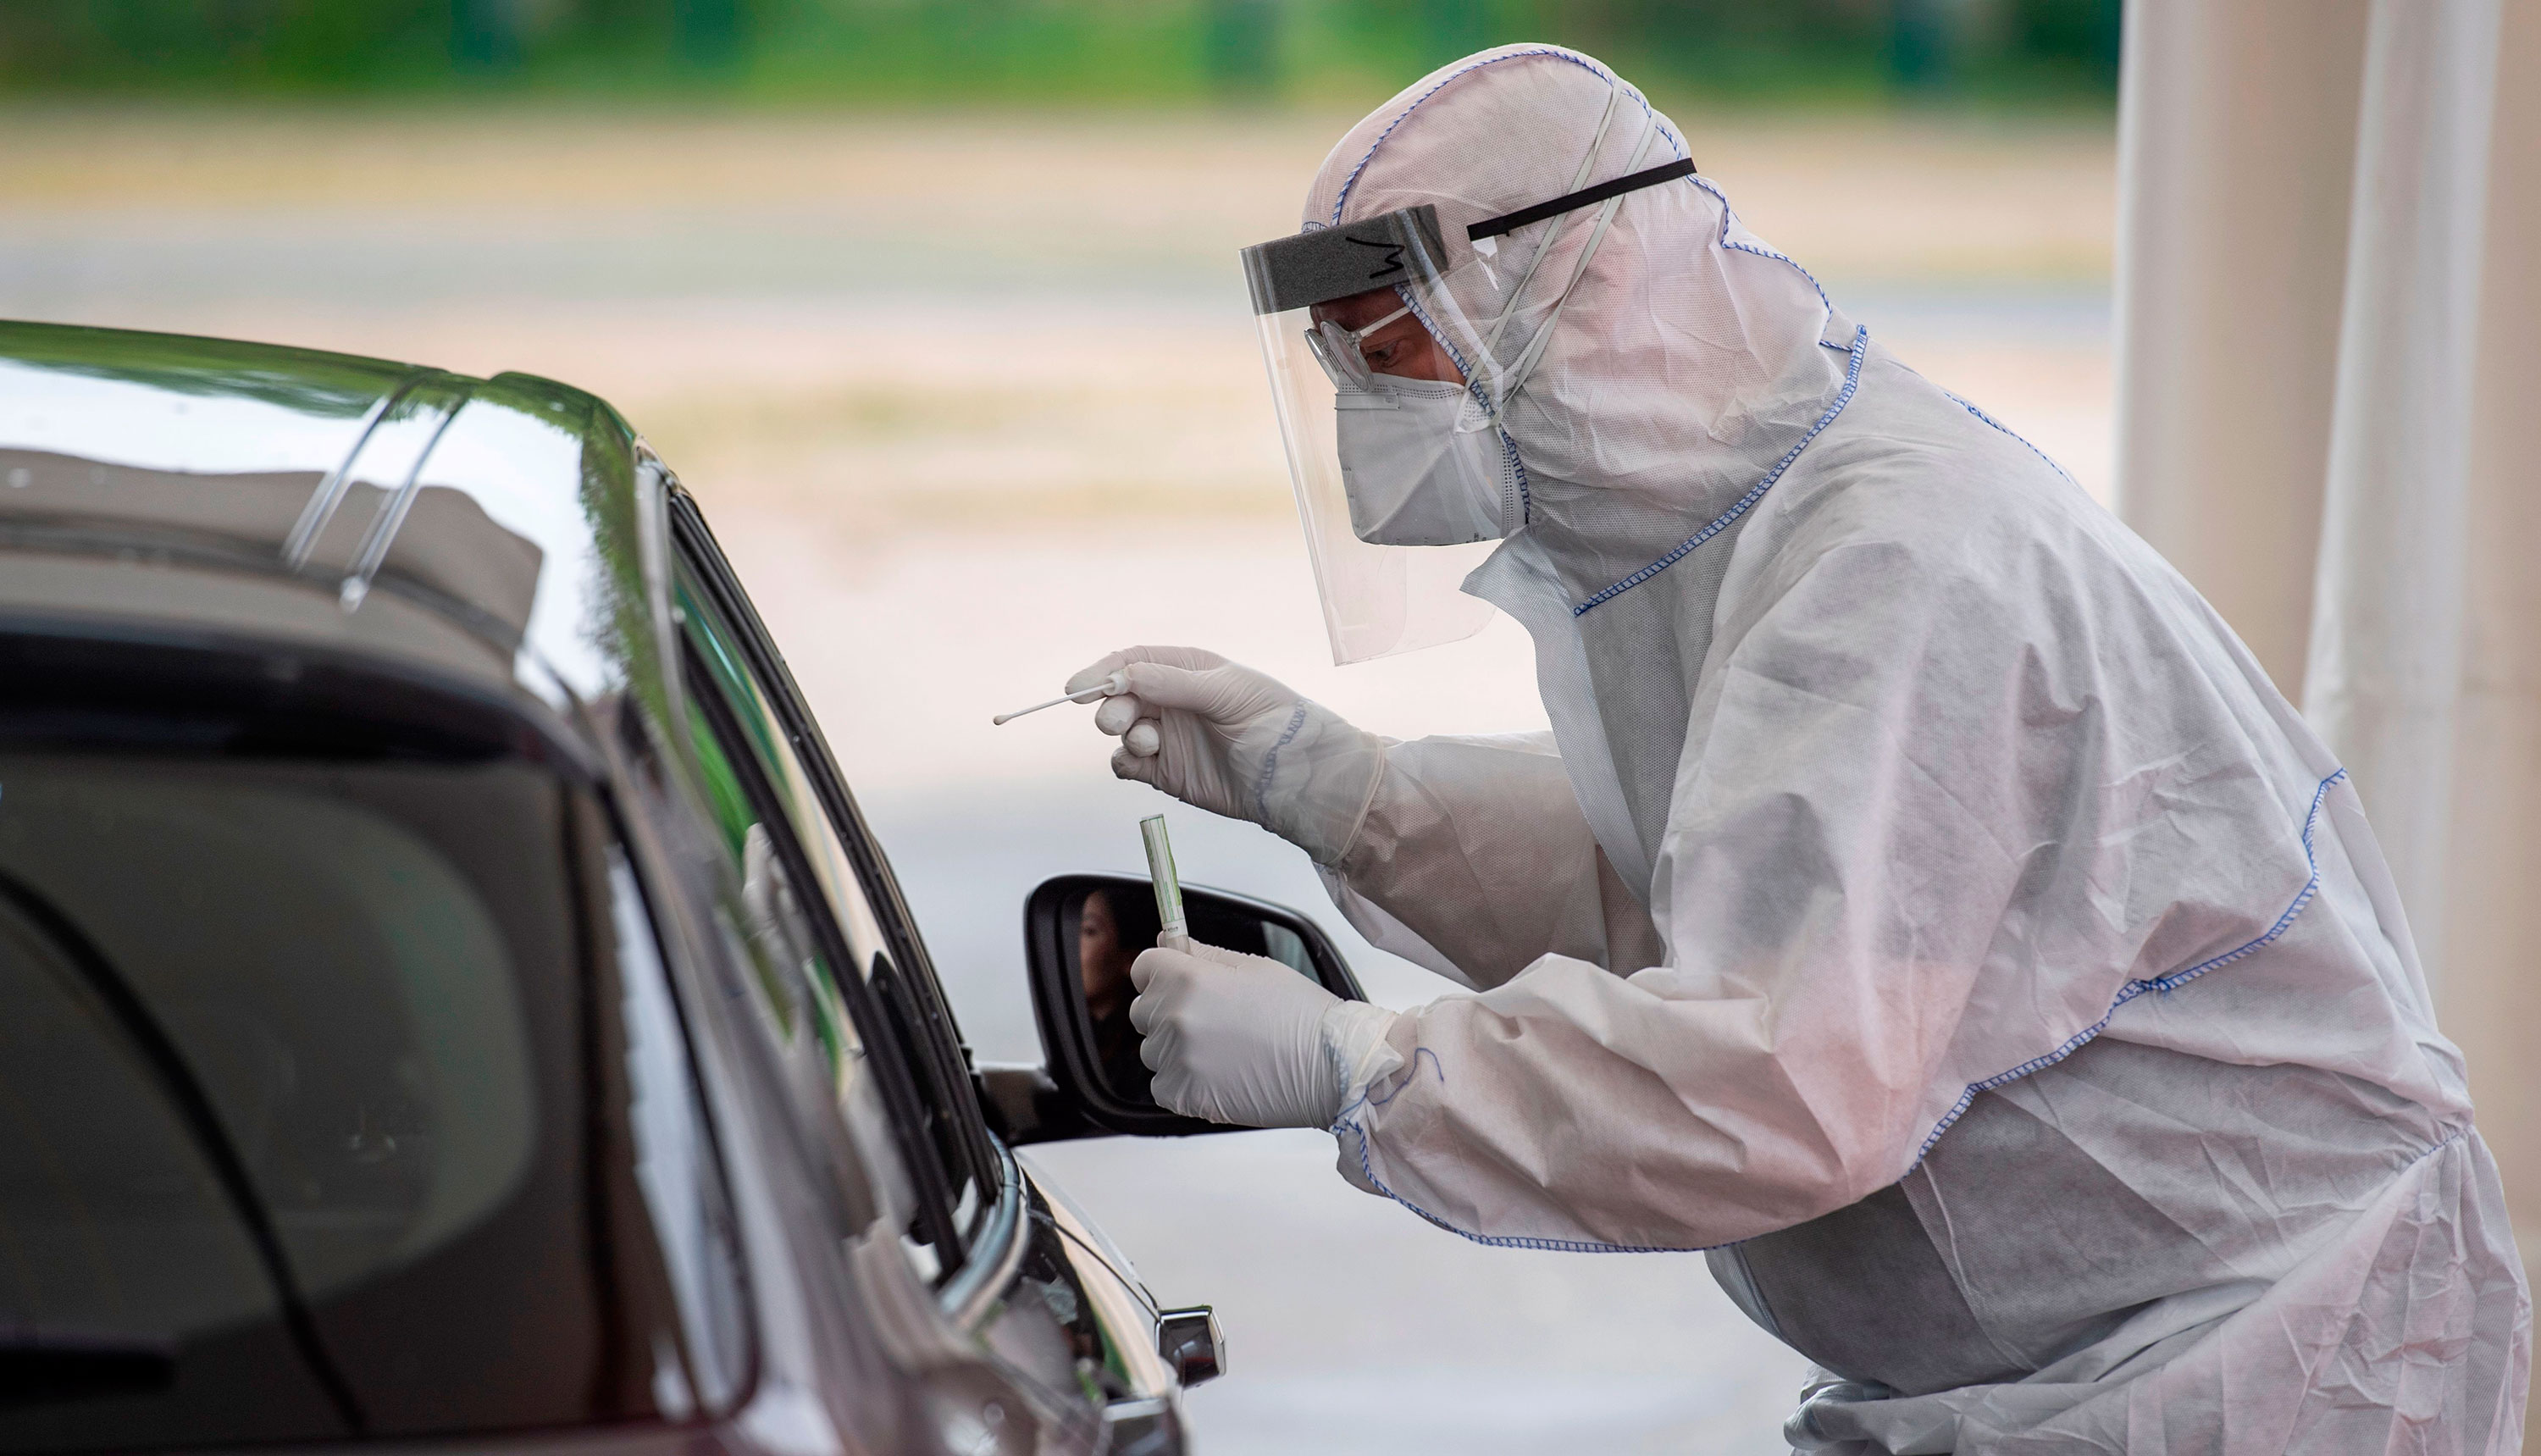 A doctor conducts a coronavirus test at a drive-thru testing site in Berlin, Germany, on April 30.